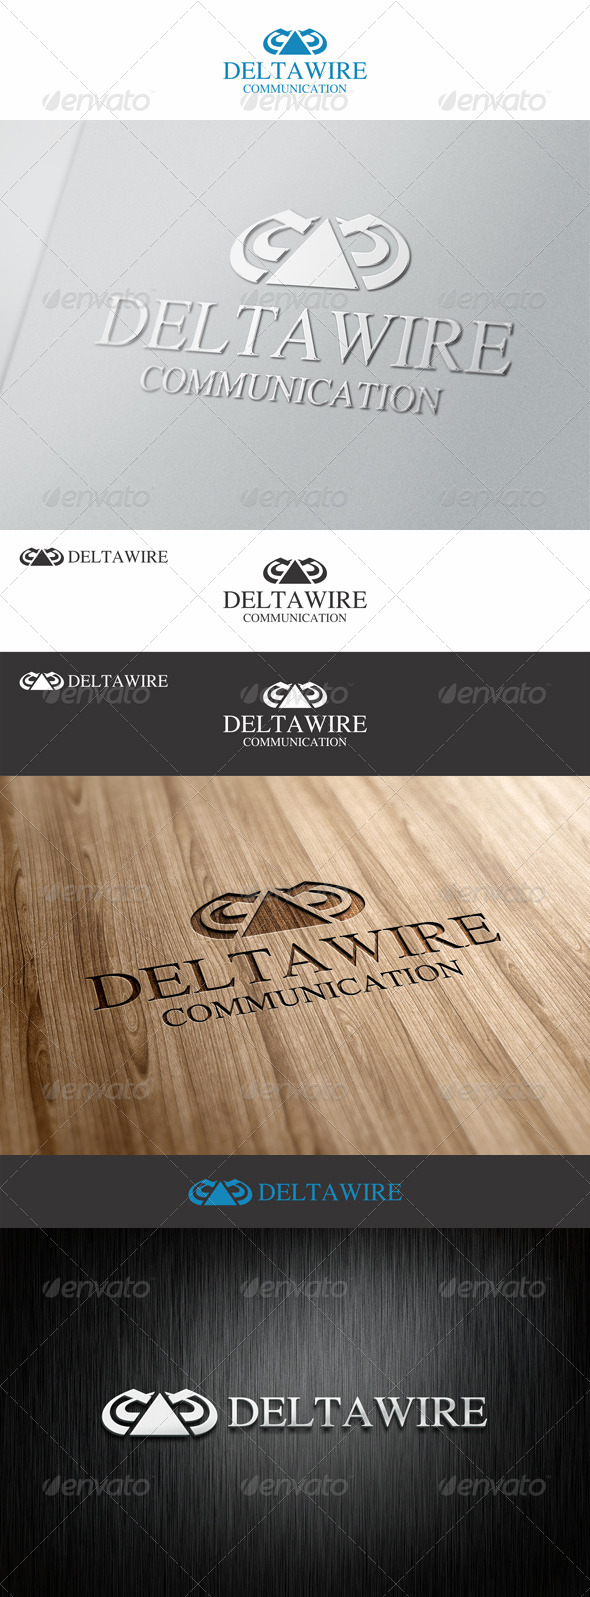 Delta Wire Communication Logo - Abstract Logo Templates